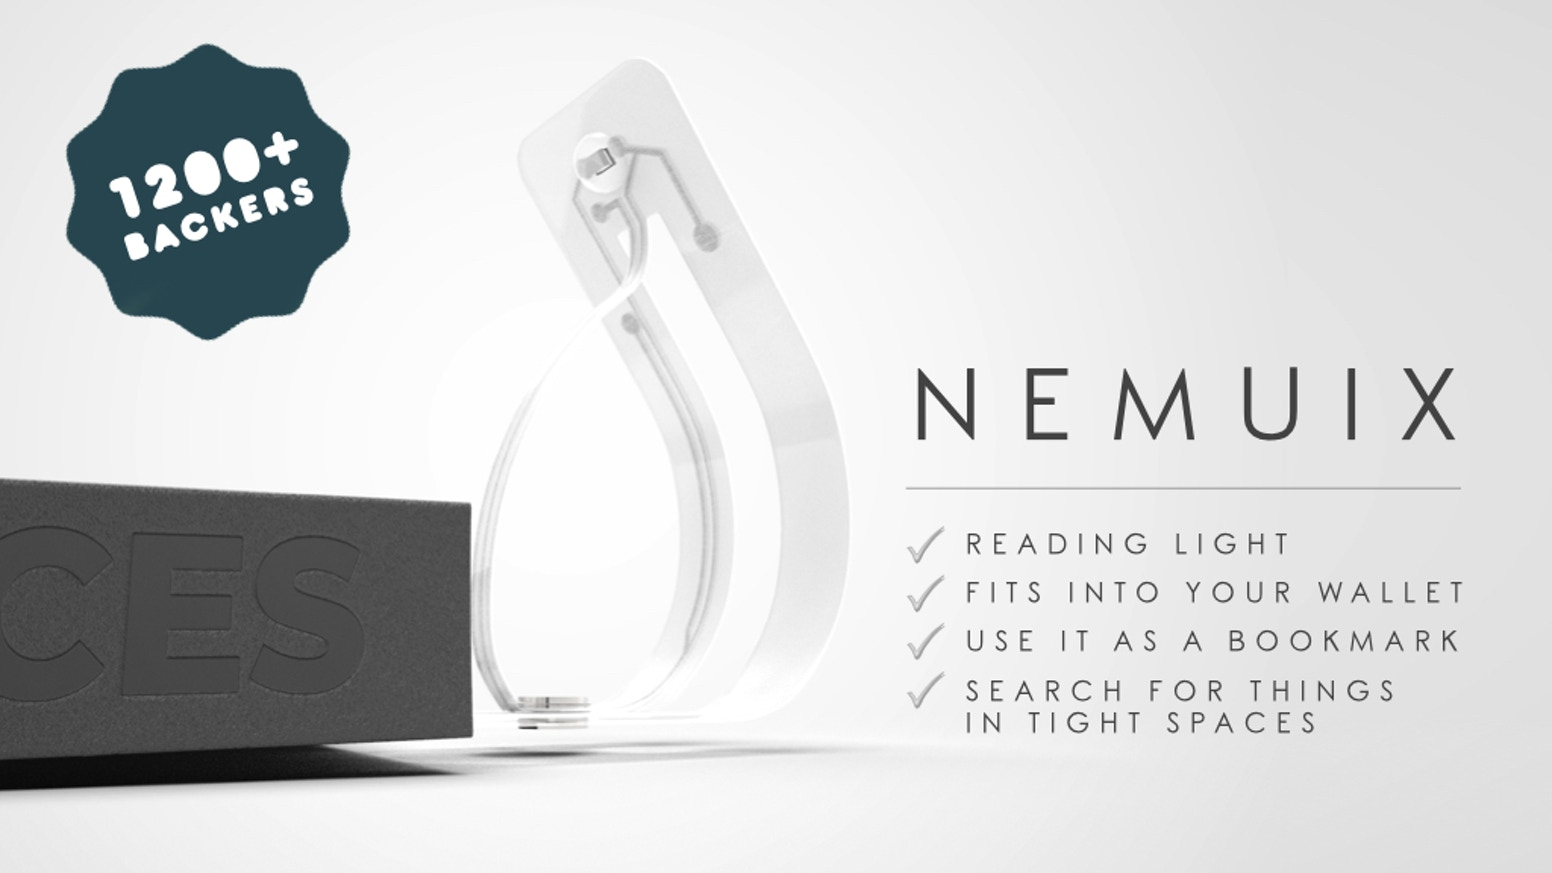 Minimalist Designed light that functions as a Reading Light and Bookmark. Low blue-light LED helps you achieve your clean-sleep goals.